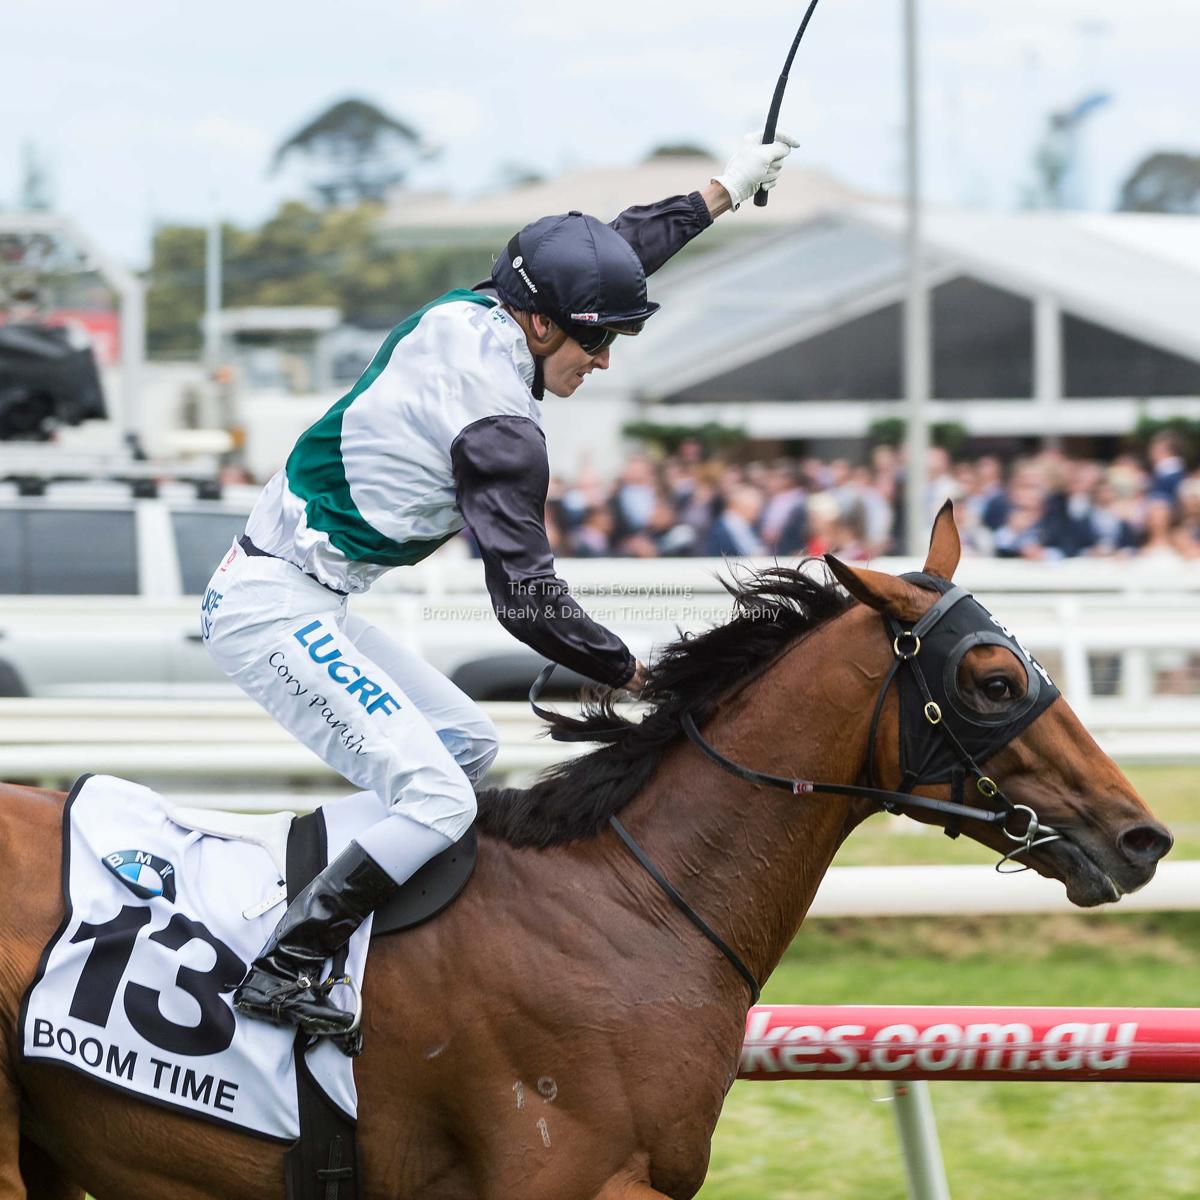 Boom Time ridden by Corey Parish wins the BMW Caulfield Cup. Pic: Darren Tindale / The Image is Everything.